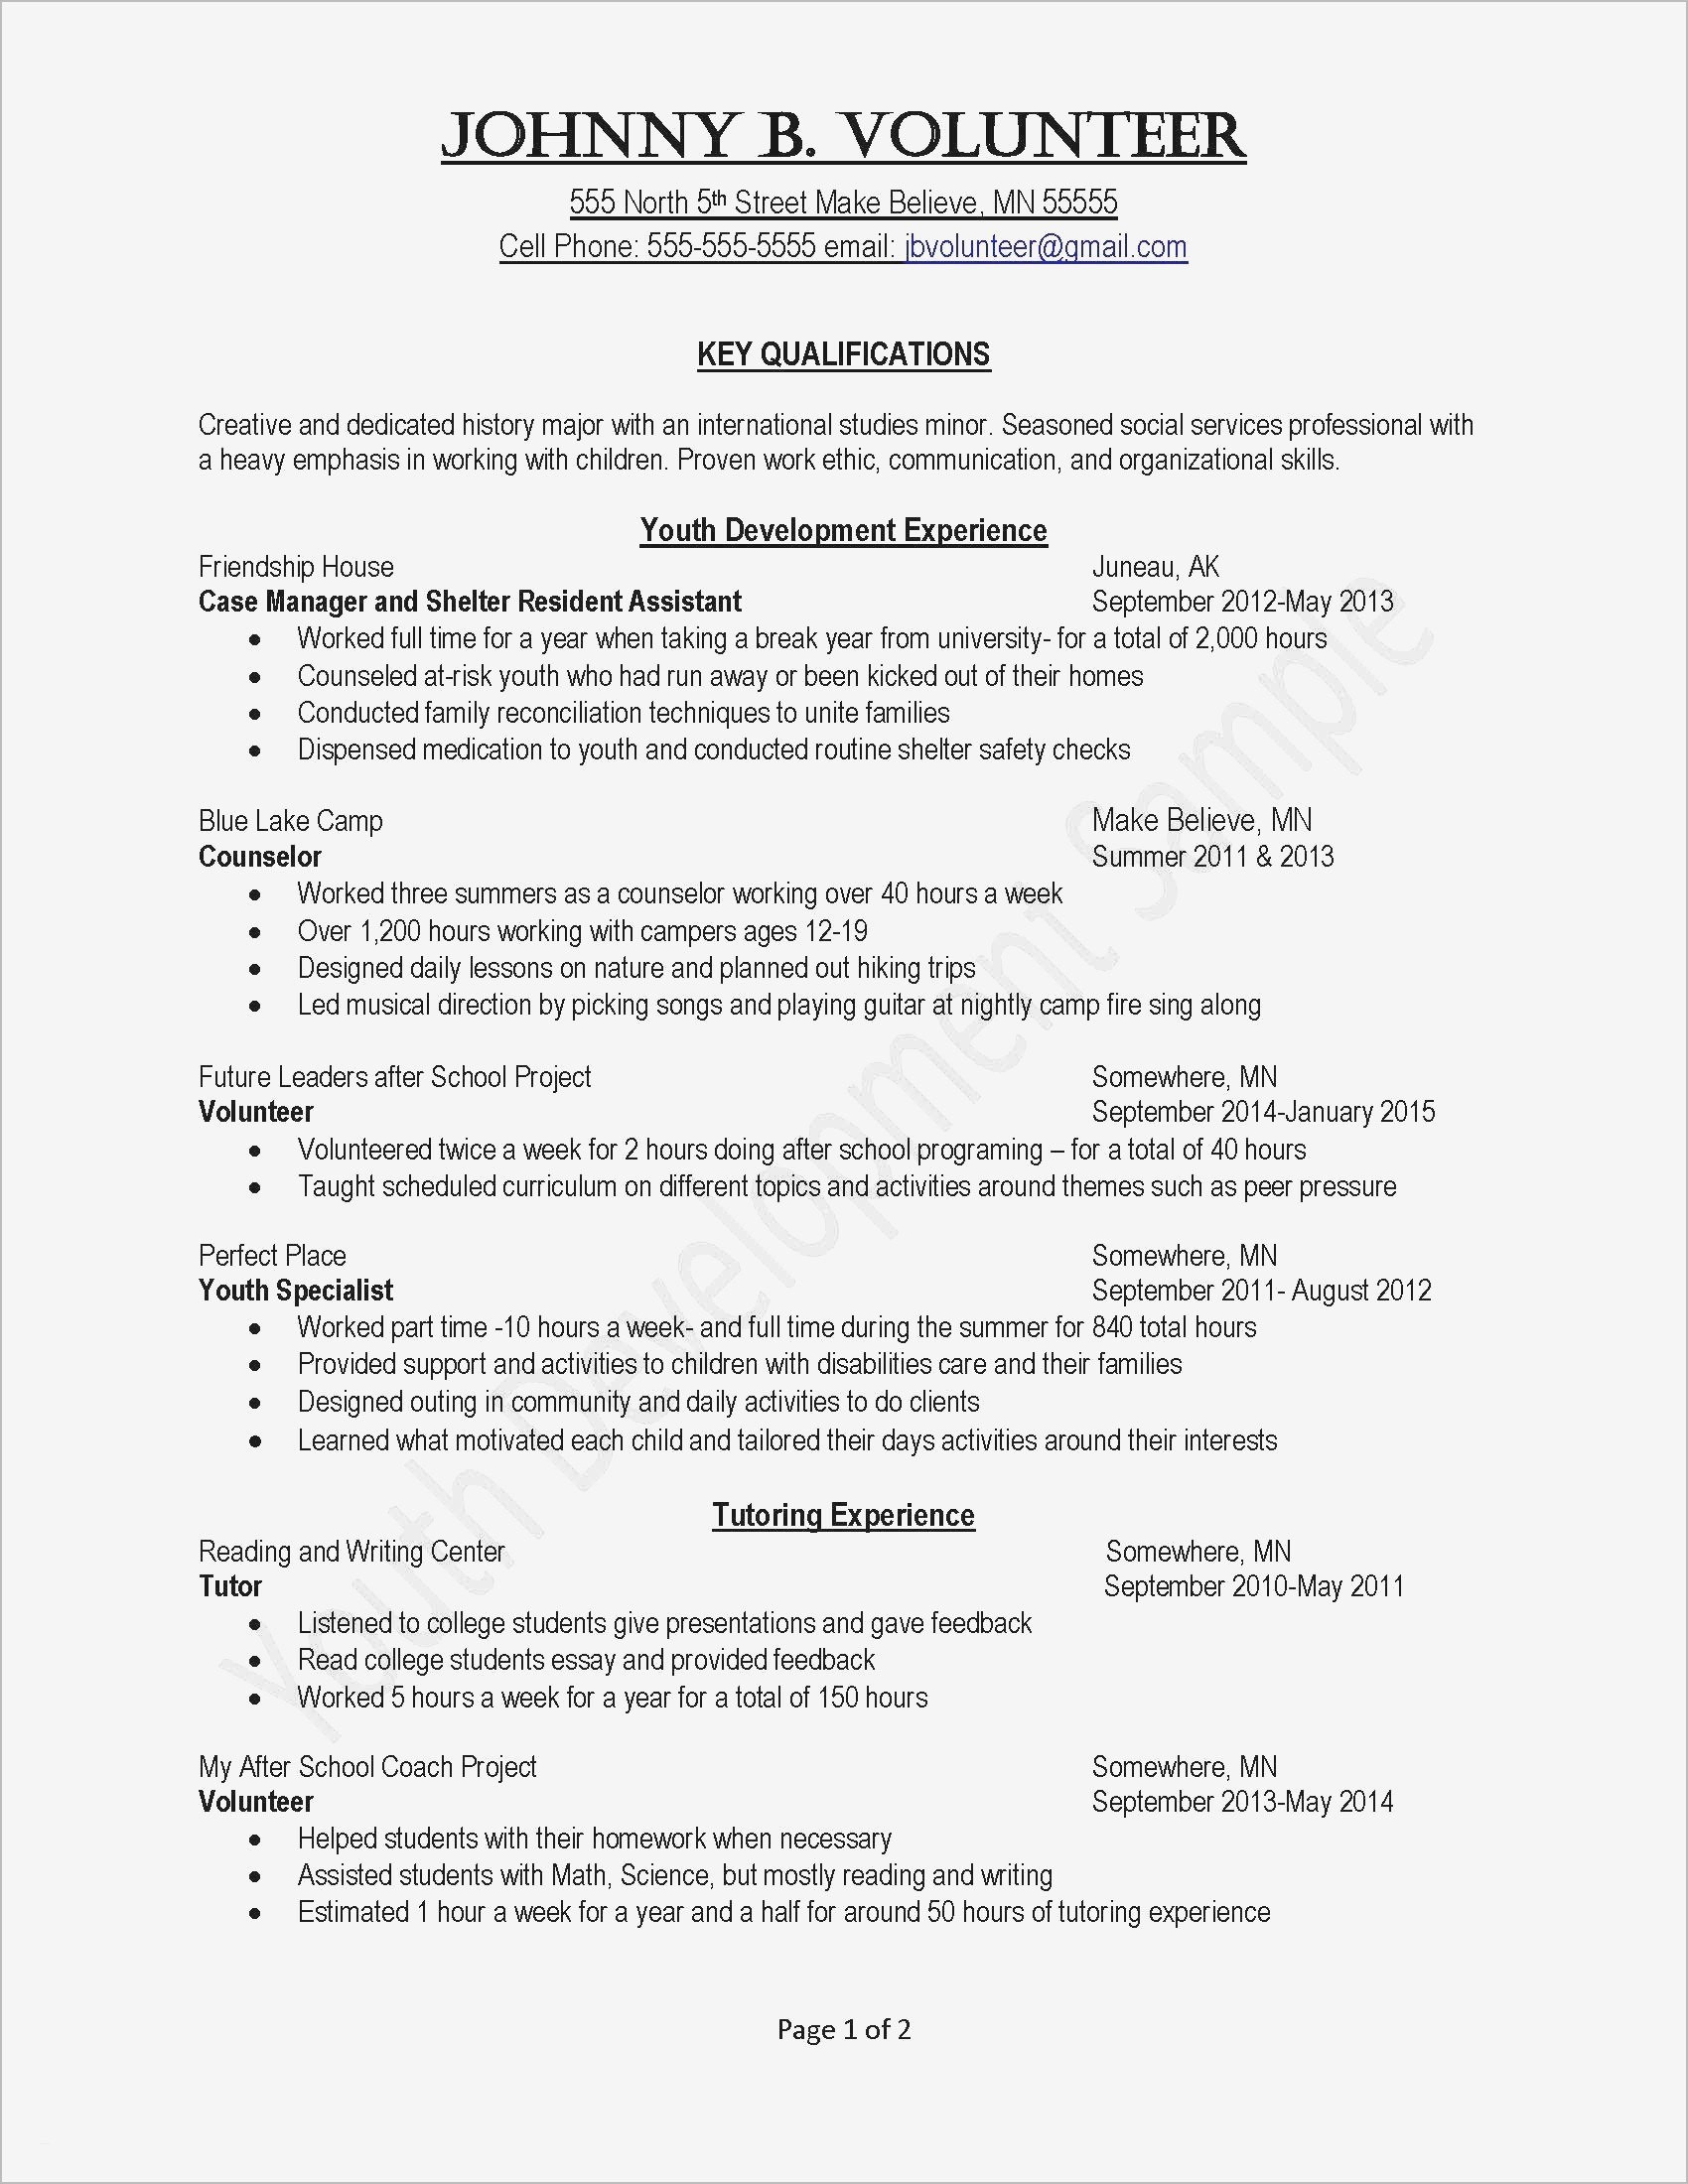 free online resume cover letter template Collection-Resume Template line Free Fresh Job Fer Letter Template Us Copy Od Consultant Cover Letter Fungram 4-b